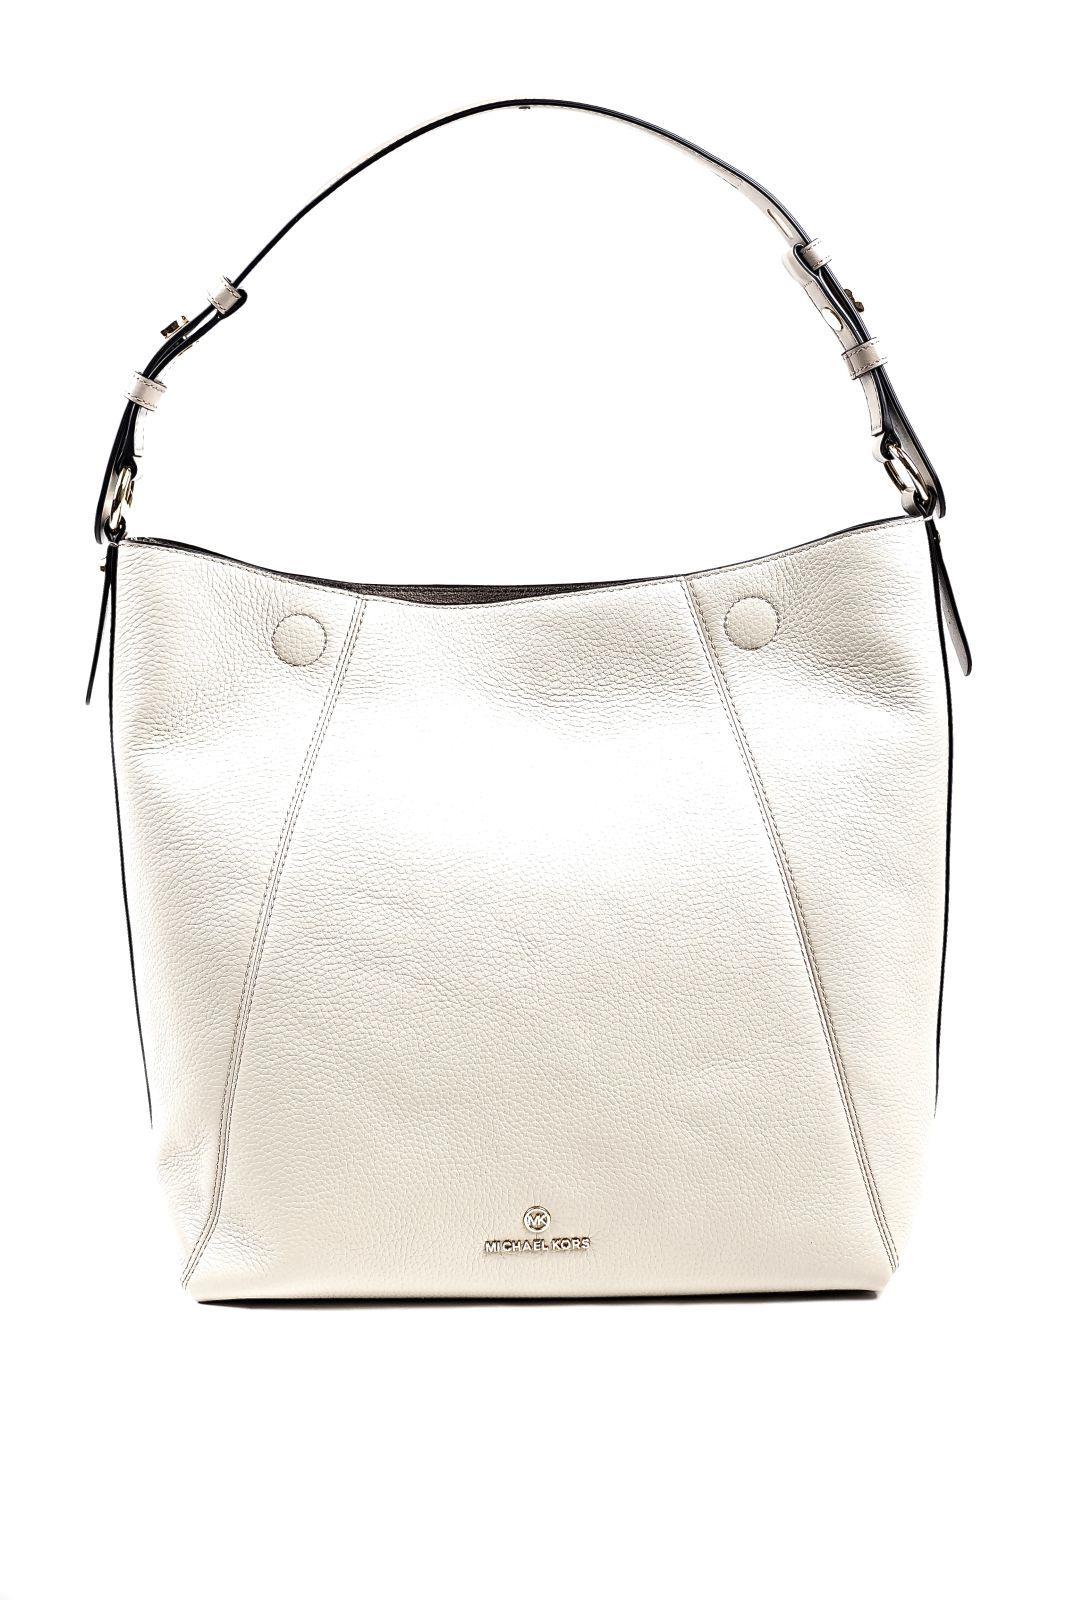 Michael Kors Bags sac Beige femmes (MKB-LUCY Grand fourre tout - GU3H3T grand 1 Lanière sand) - Marine | Much more than shoes